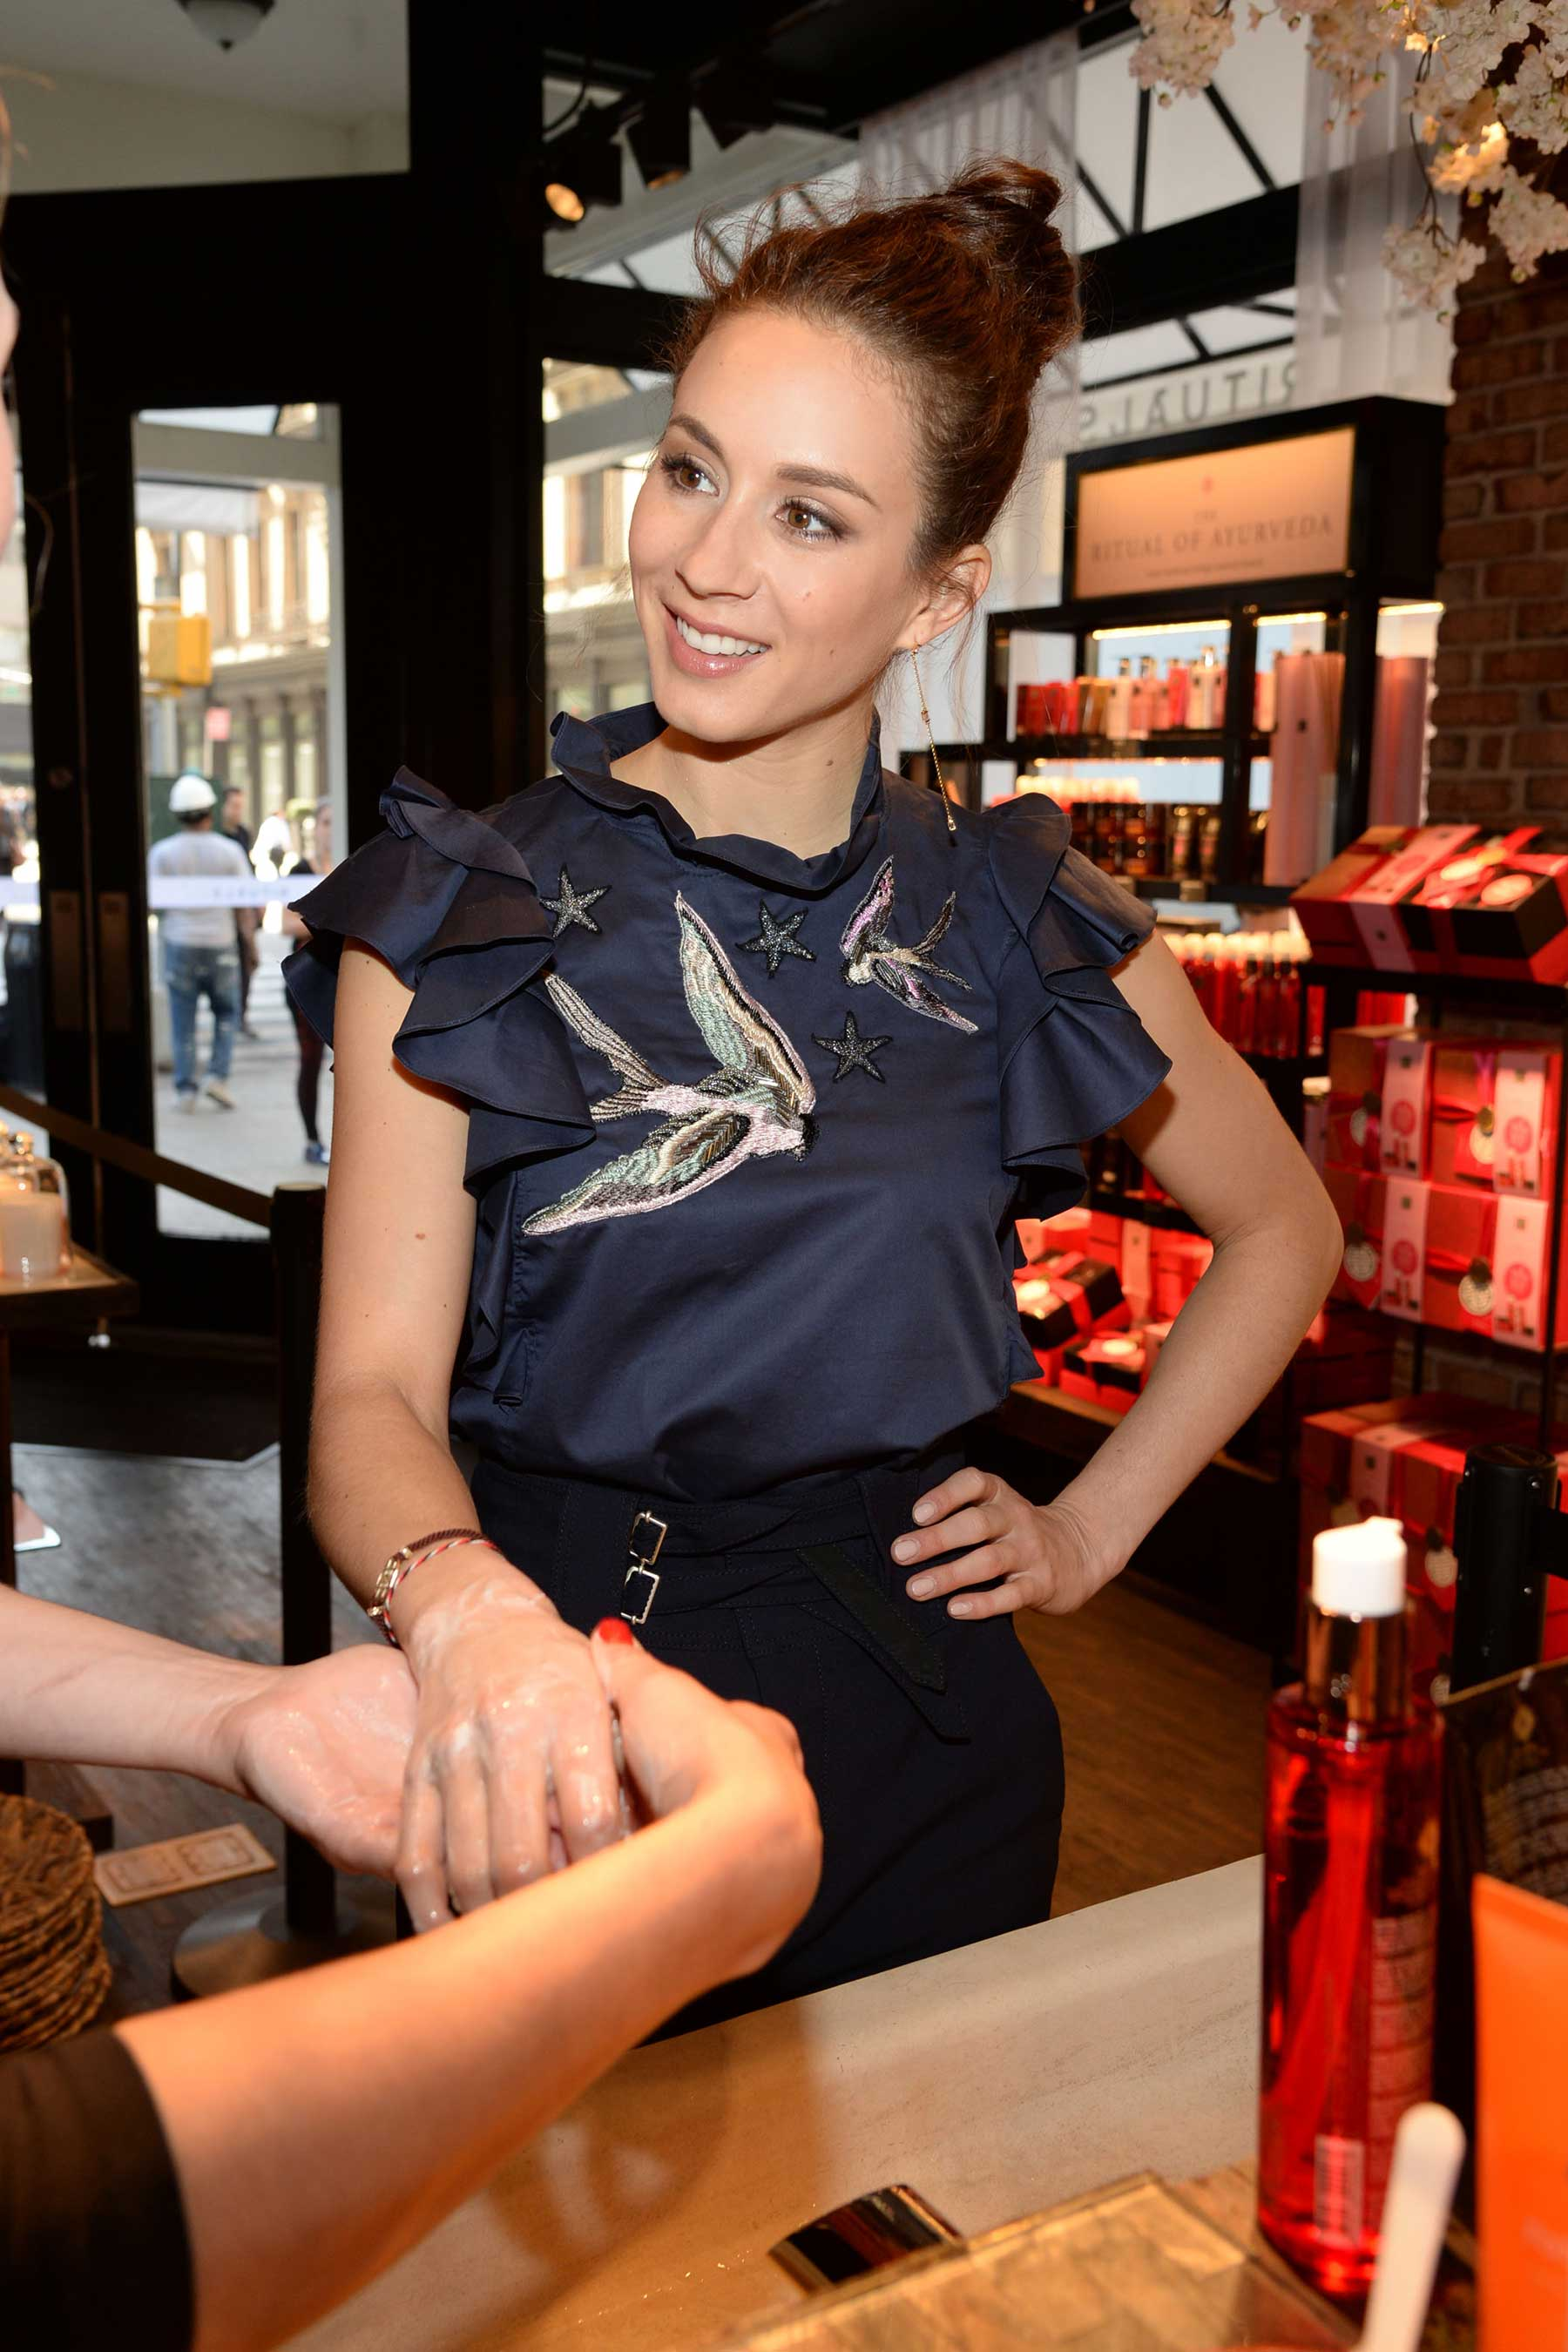 Troian Bellisario enjoying a hand treatment at Rituals Fifth Avenue NYC store